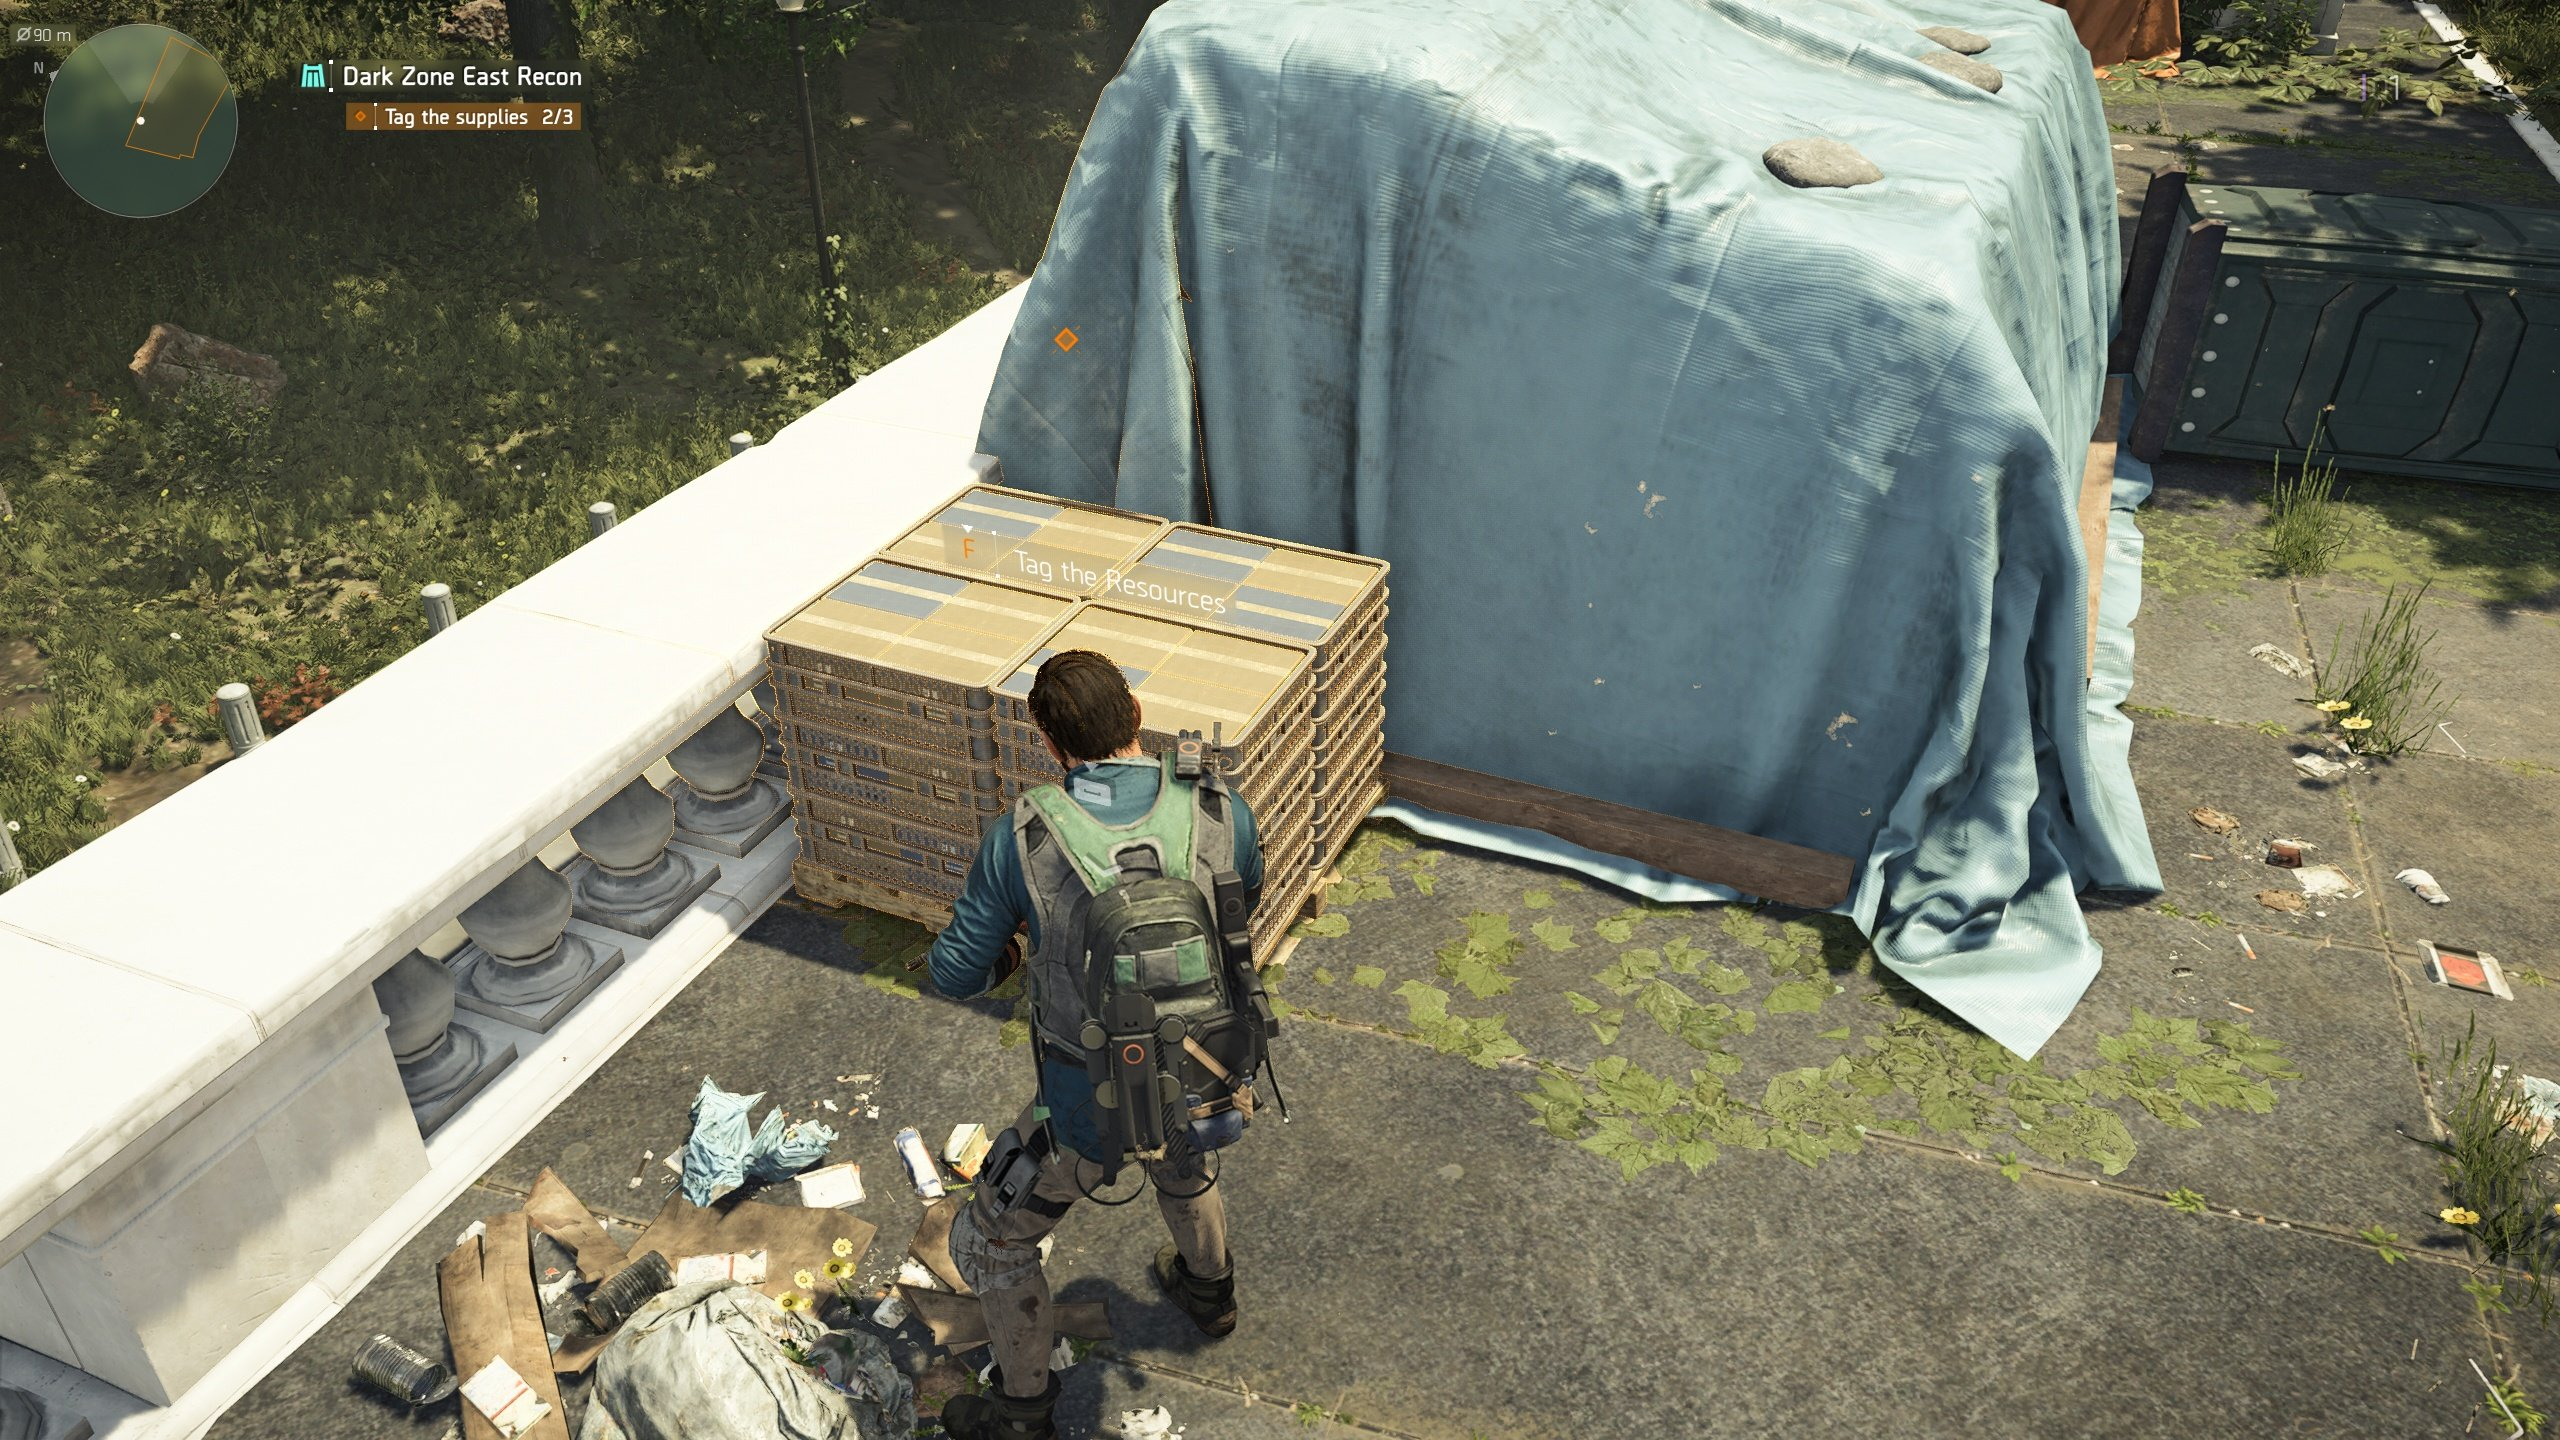 how to unlock the dark zone in The Division 2 - tag supplies in the Dark Zone